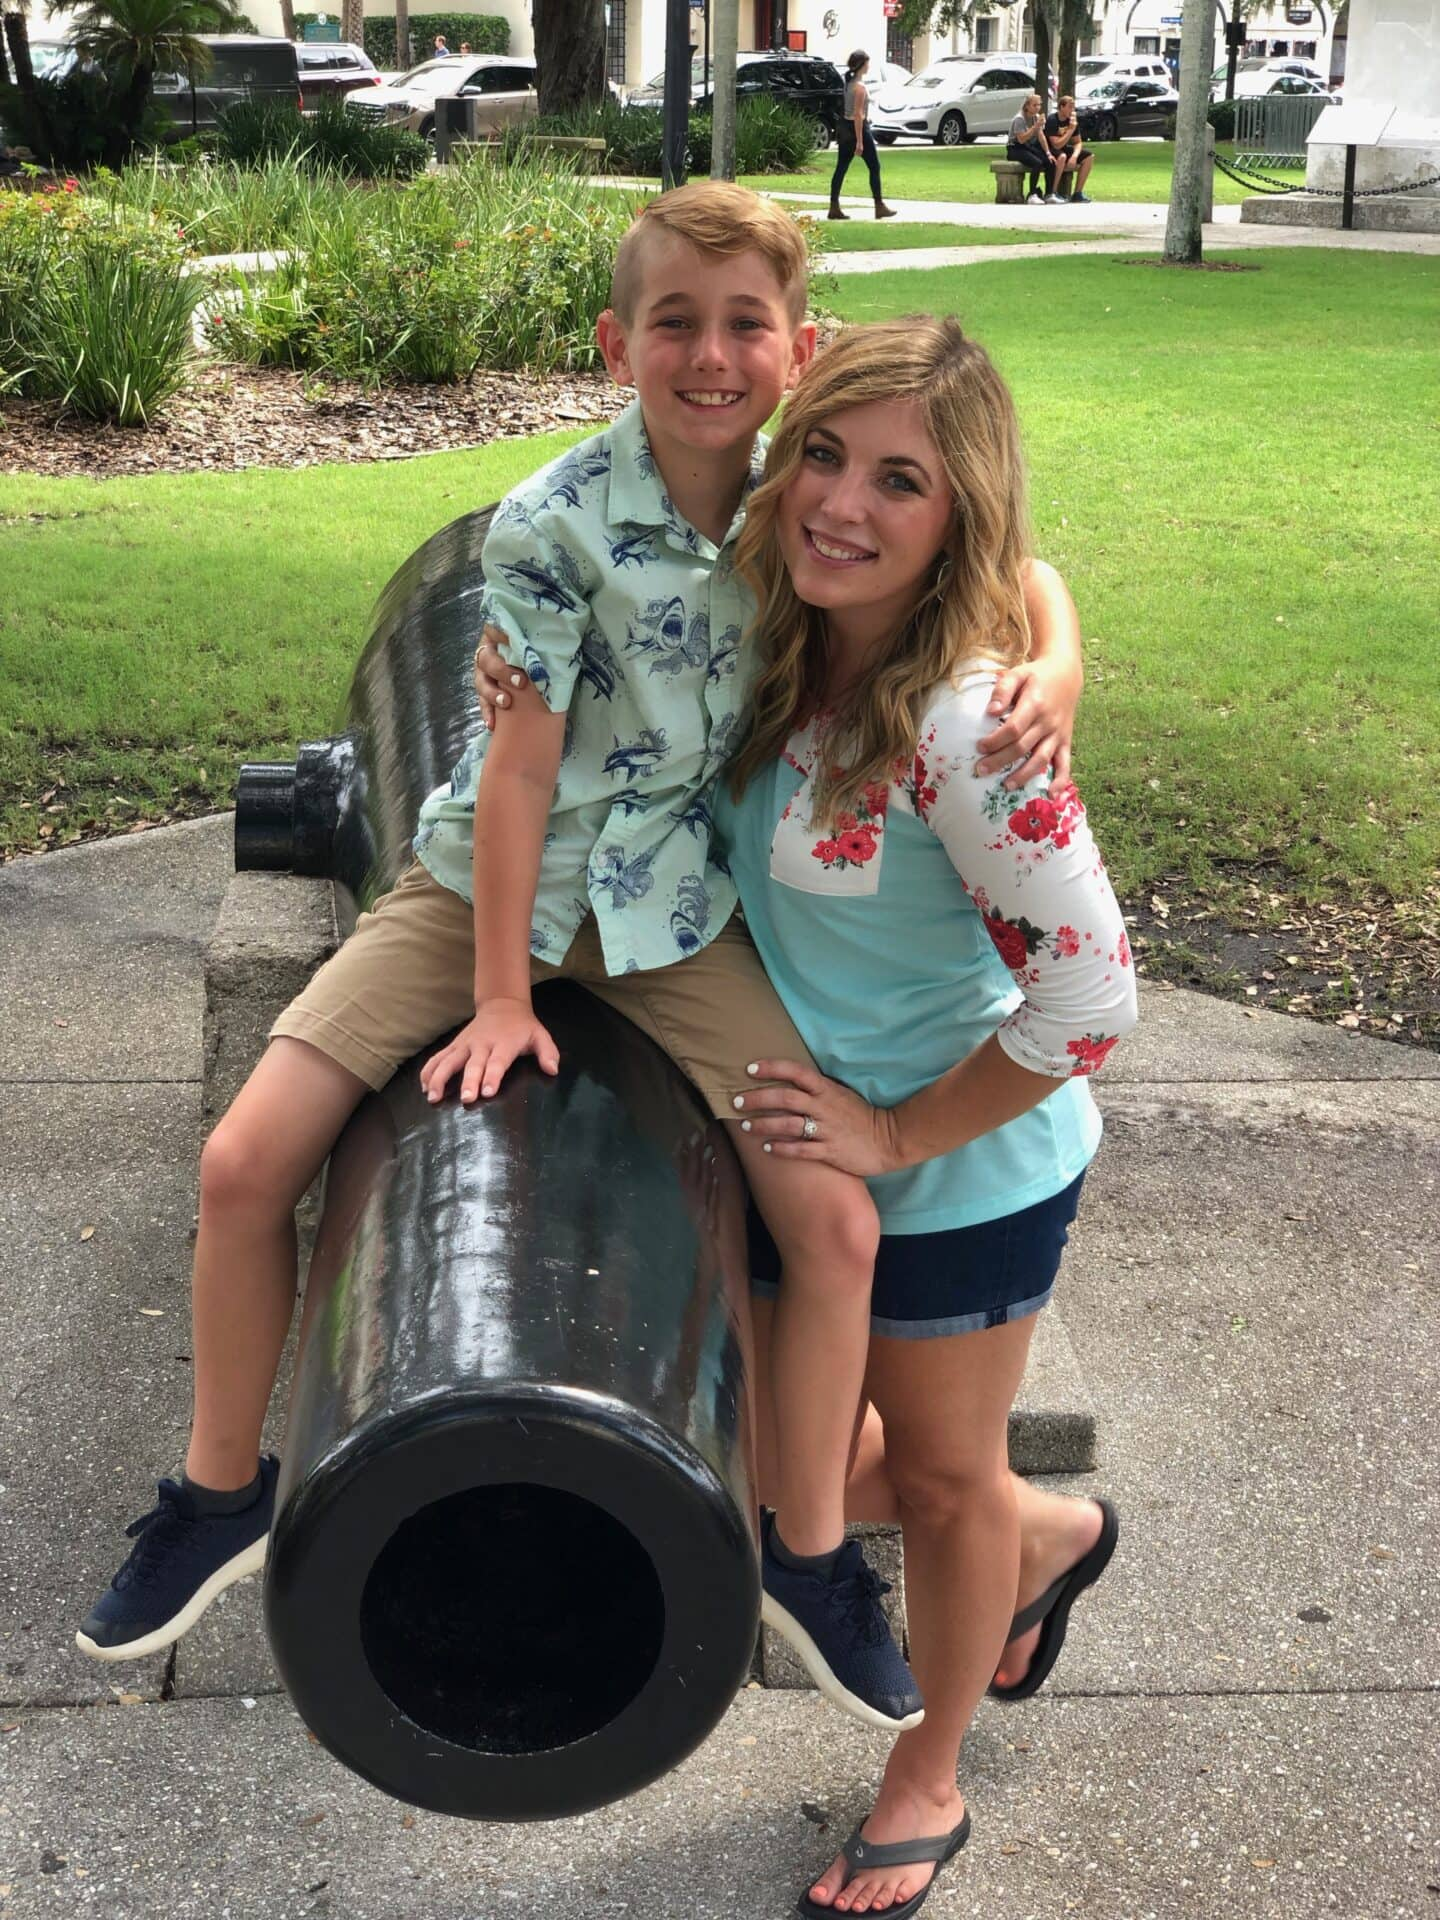 cannon in historic old town st augustine